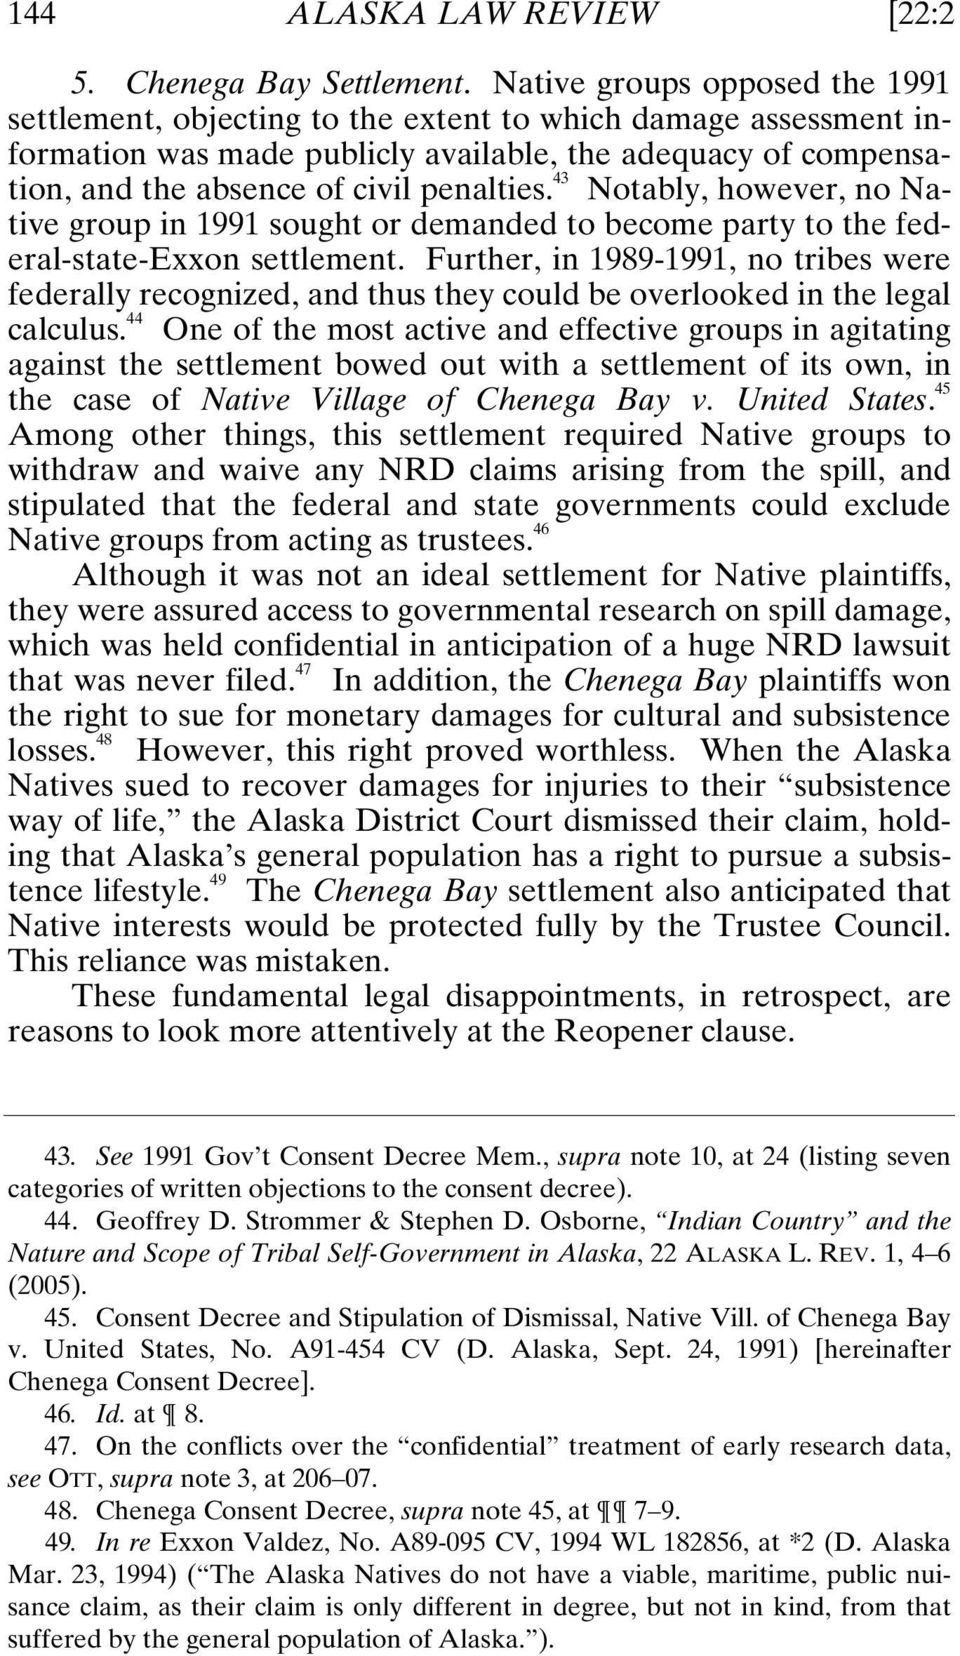 43 Notably, however, no Native group in 1991 sought or demanded to become party to the federal-state-exxon settlement.